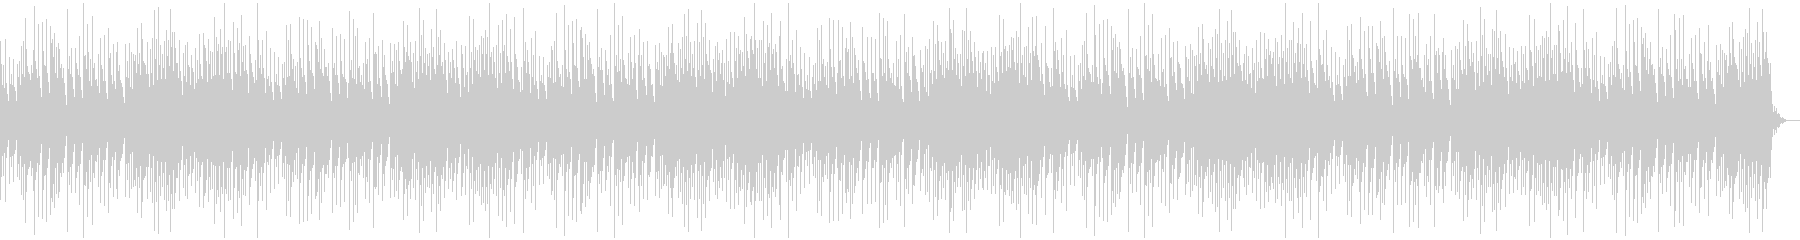 Sentimental and relaxed music box song's unreproduced waveform